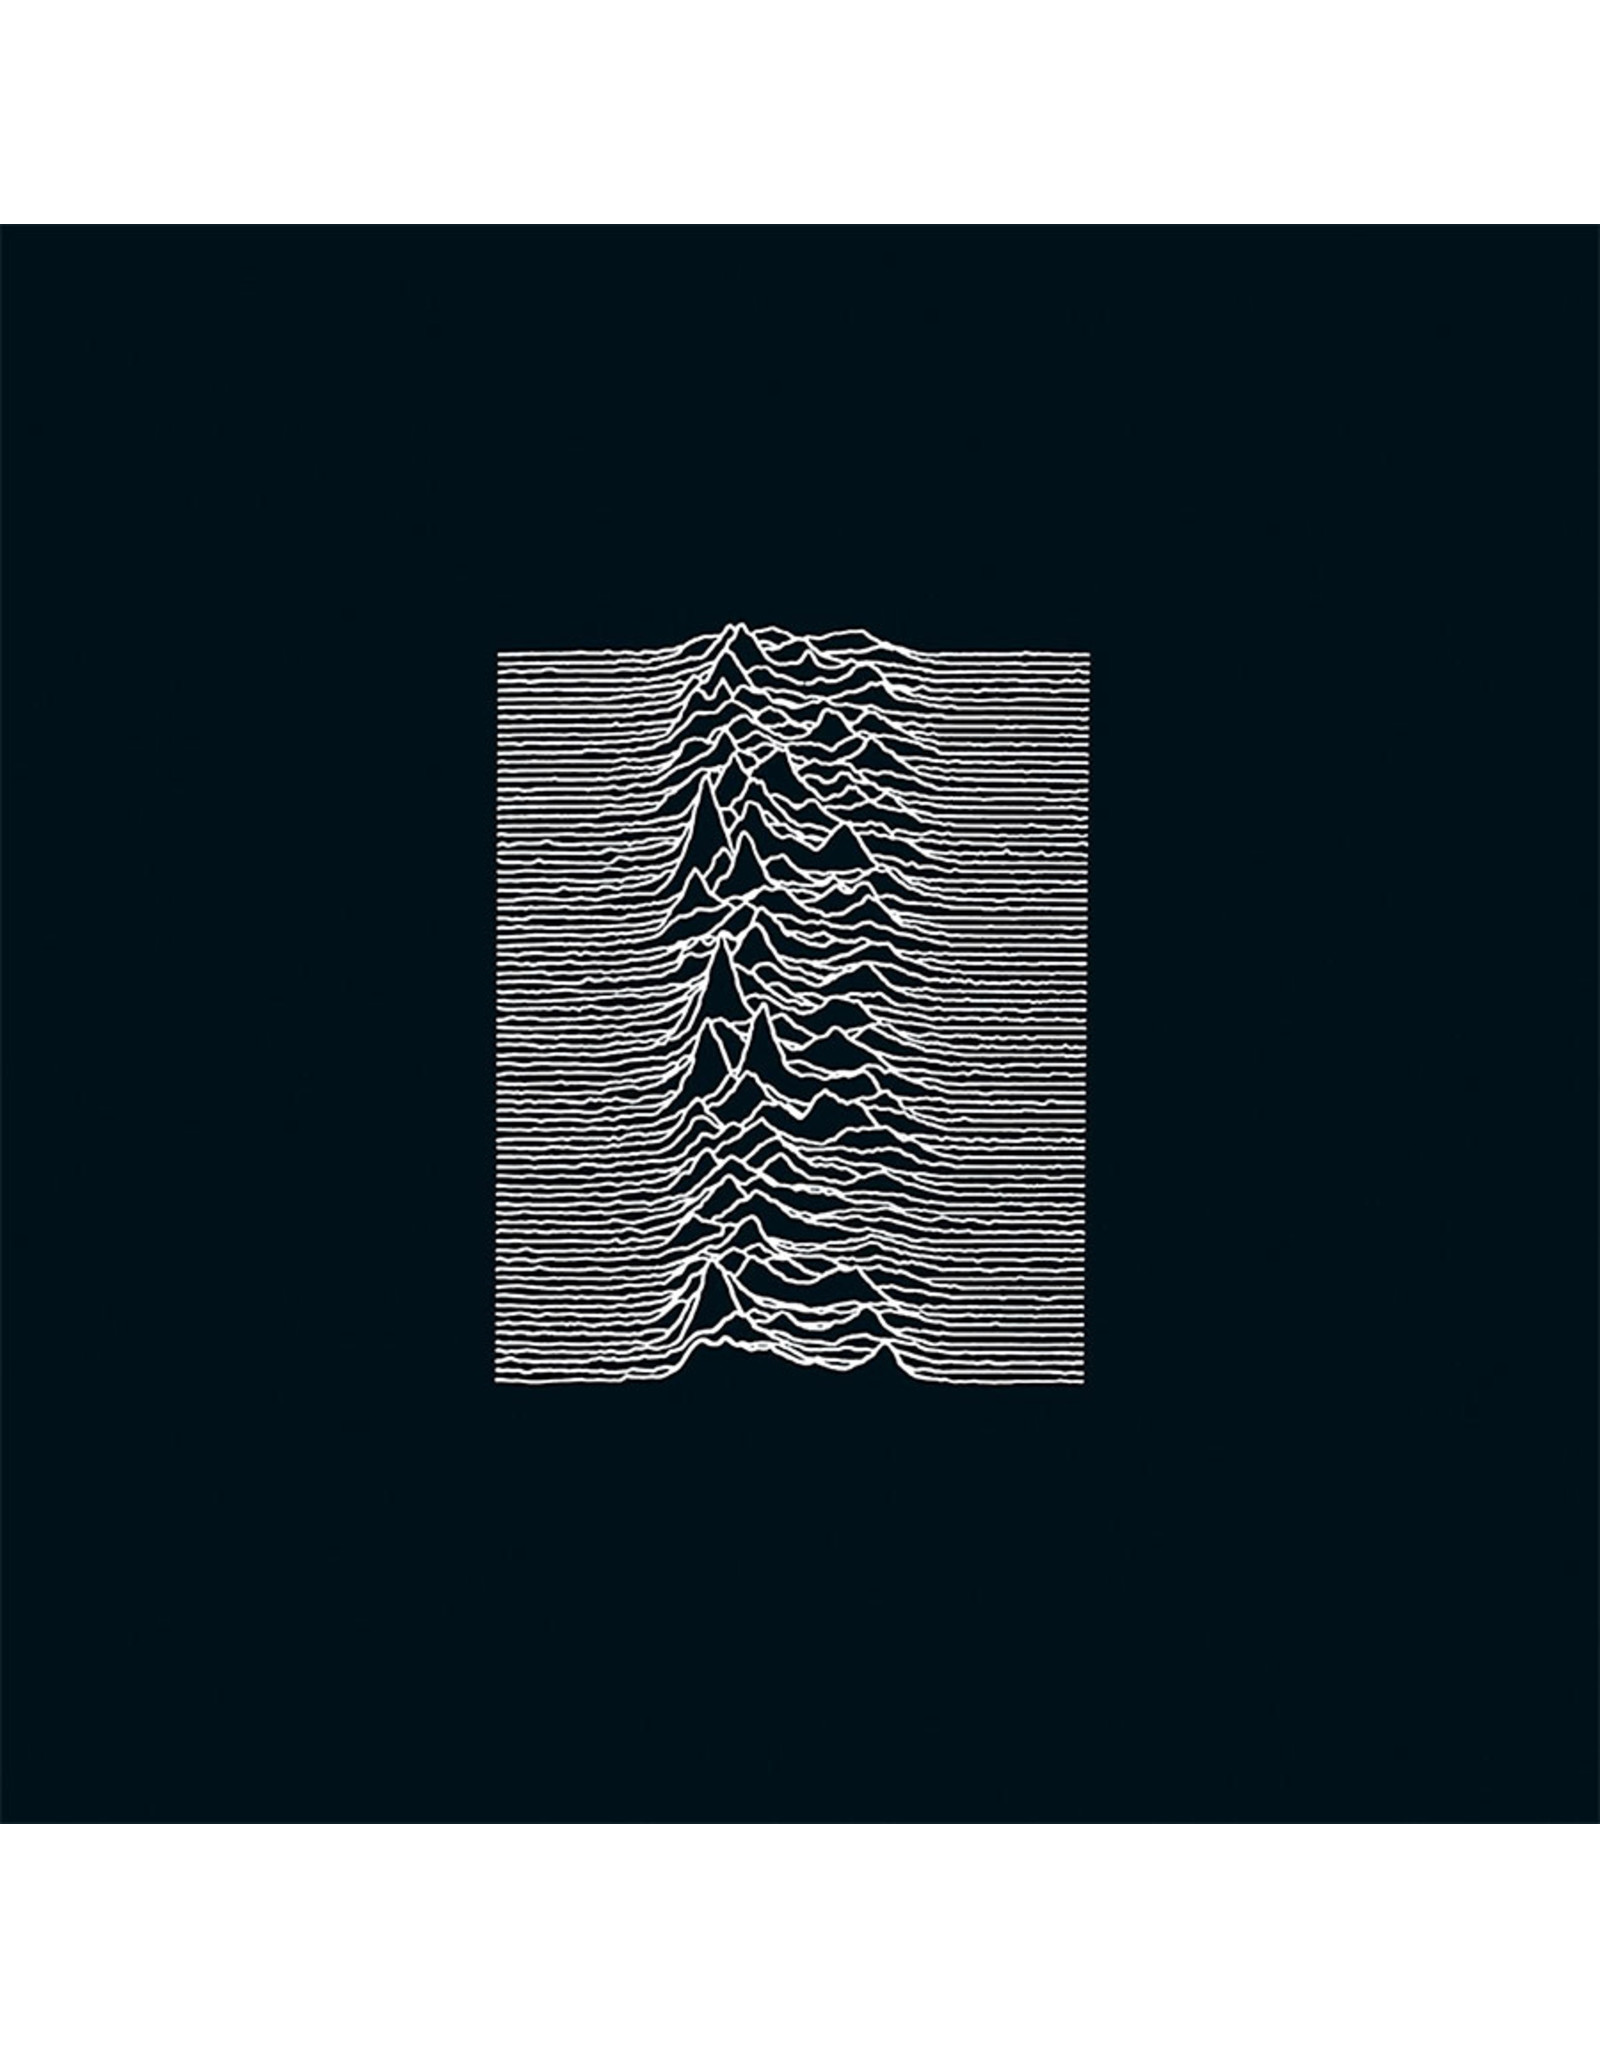 AMS AMS LP Joy Division Unknown Pleasures